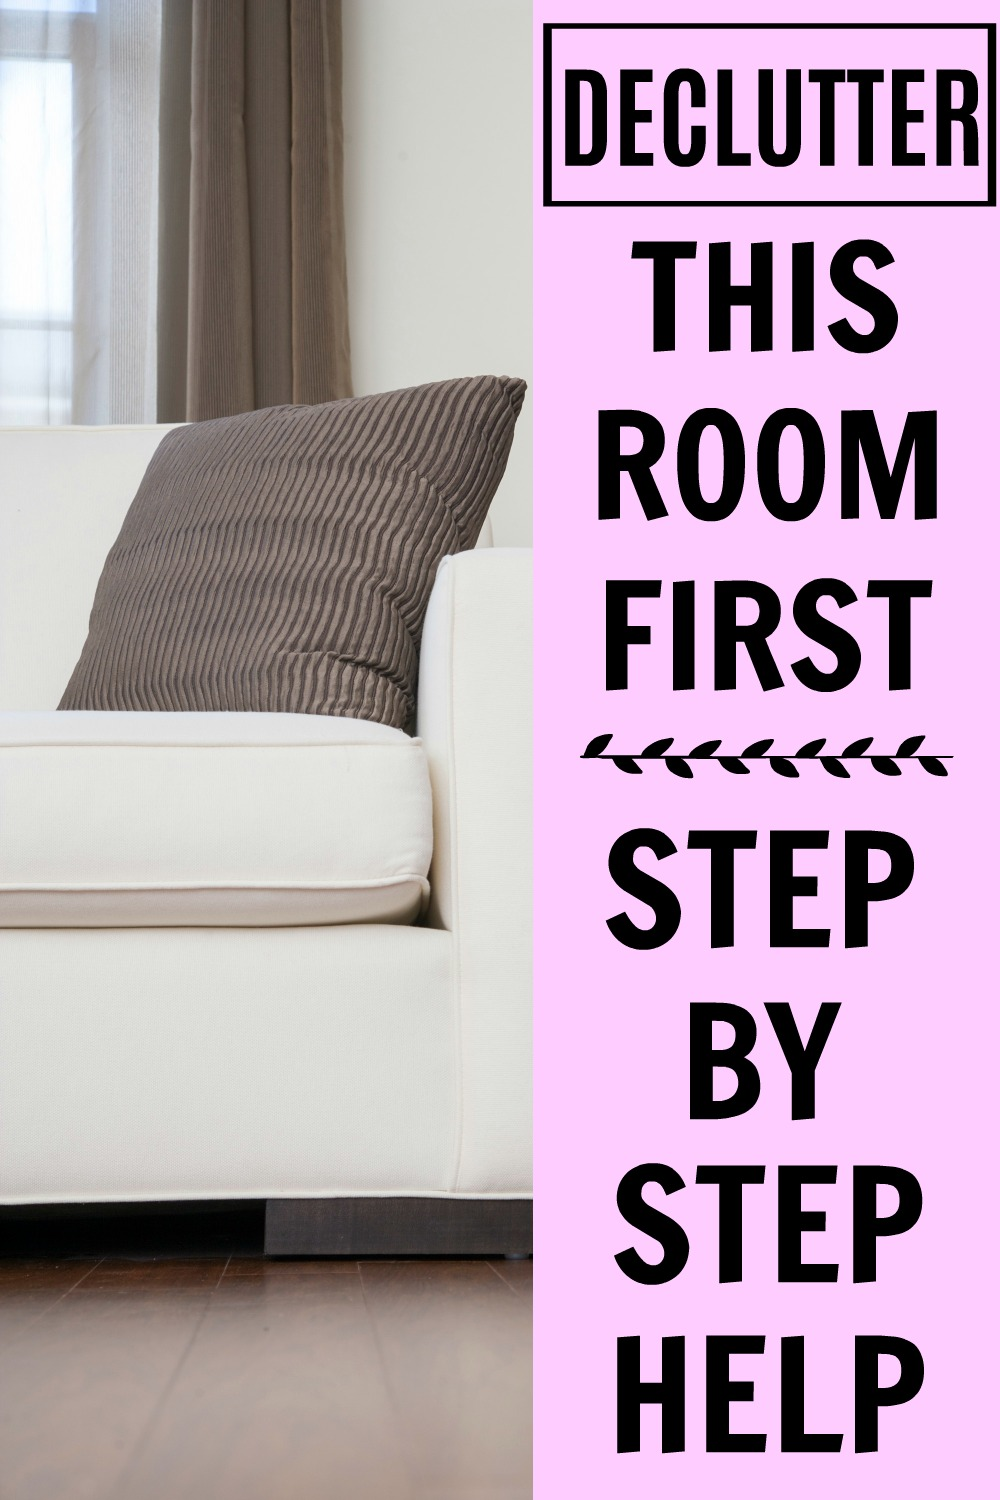 Declutter this room first and get the motivation you need to declutter the rest of the house!